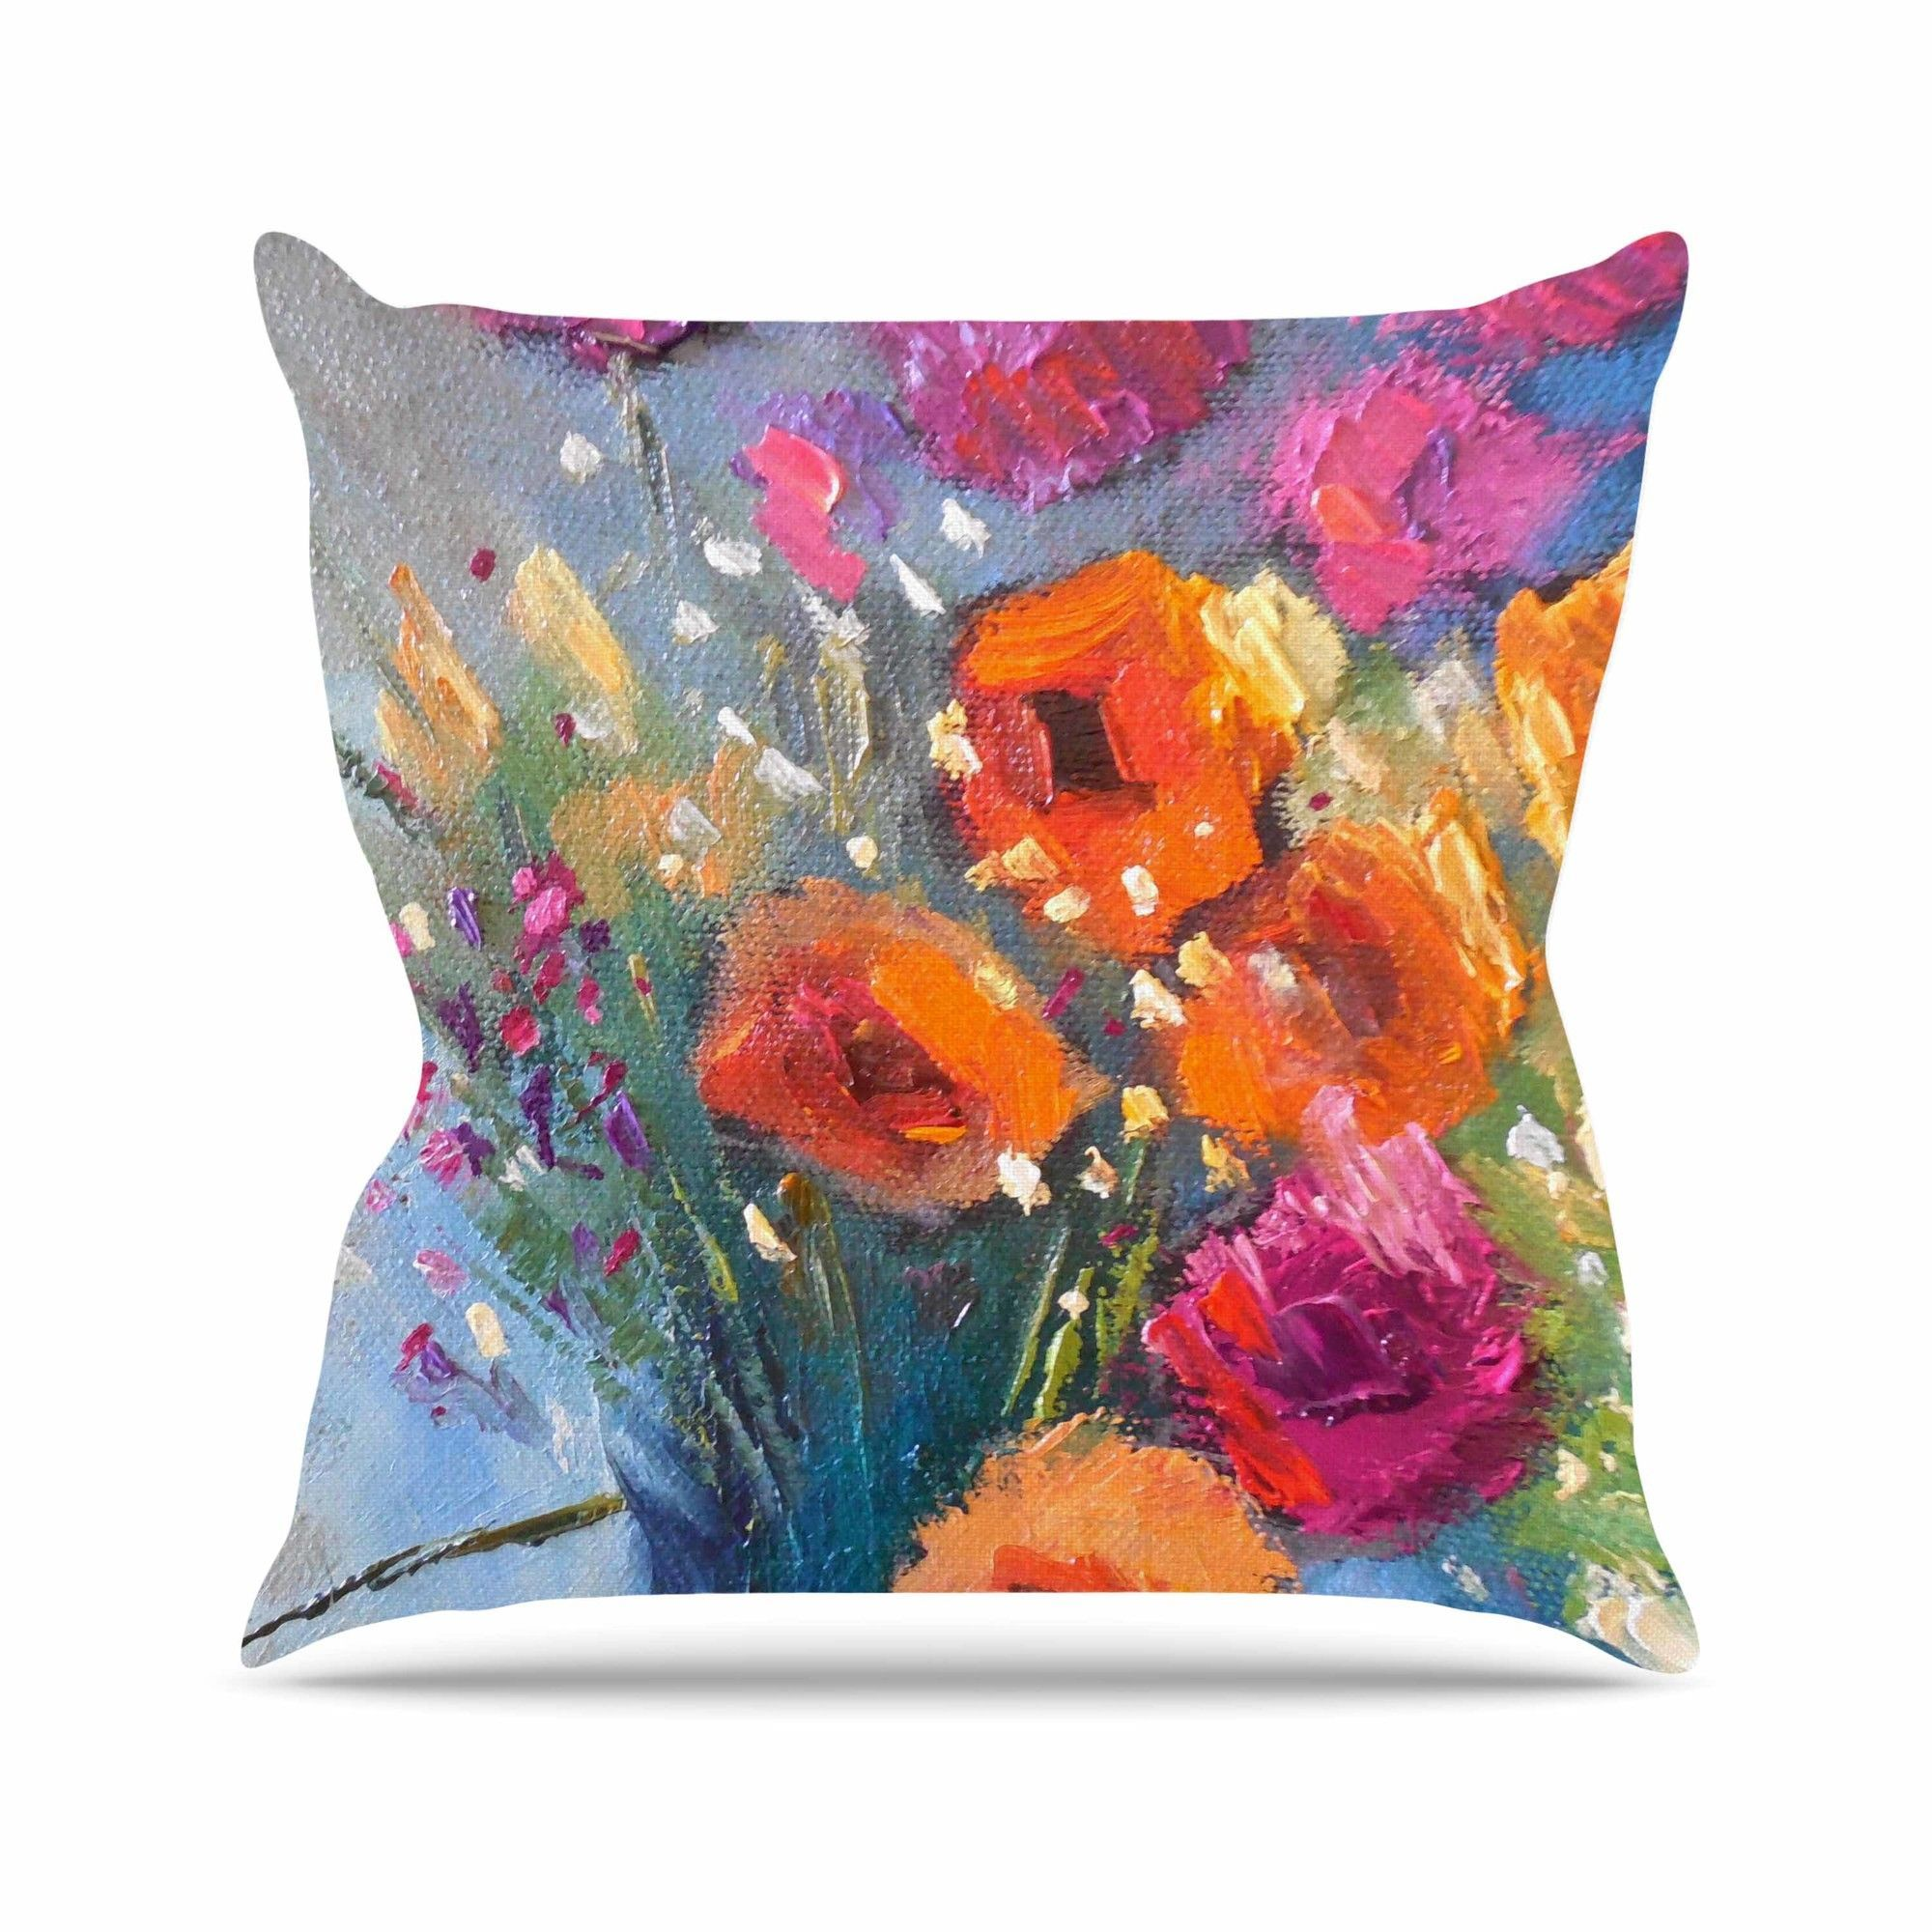 Roadside Bouquet Throw Pillow